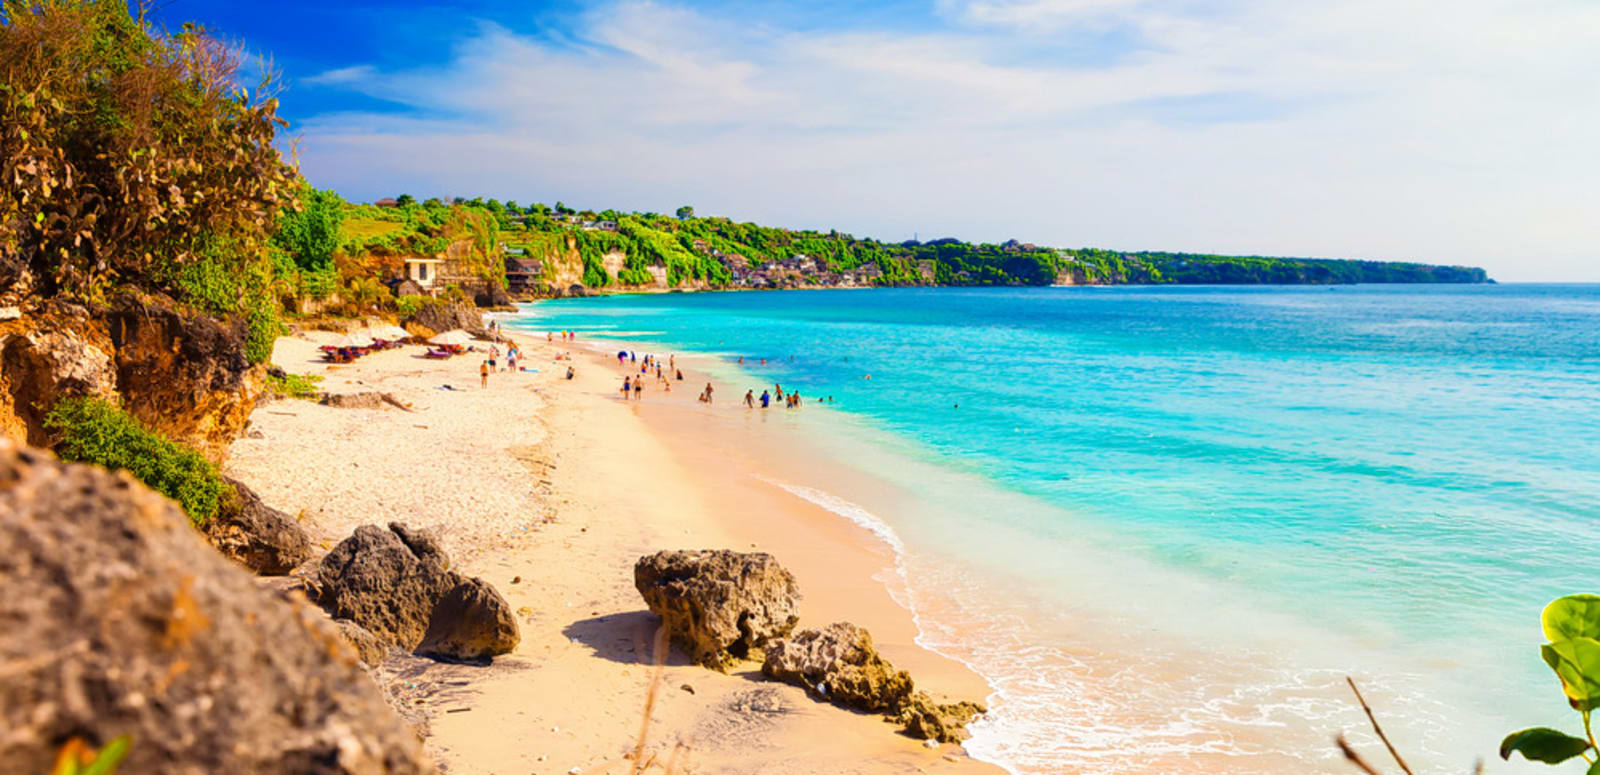 30 Best Beaches In Bali 2019 With Photos 2100 Reviews